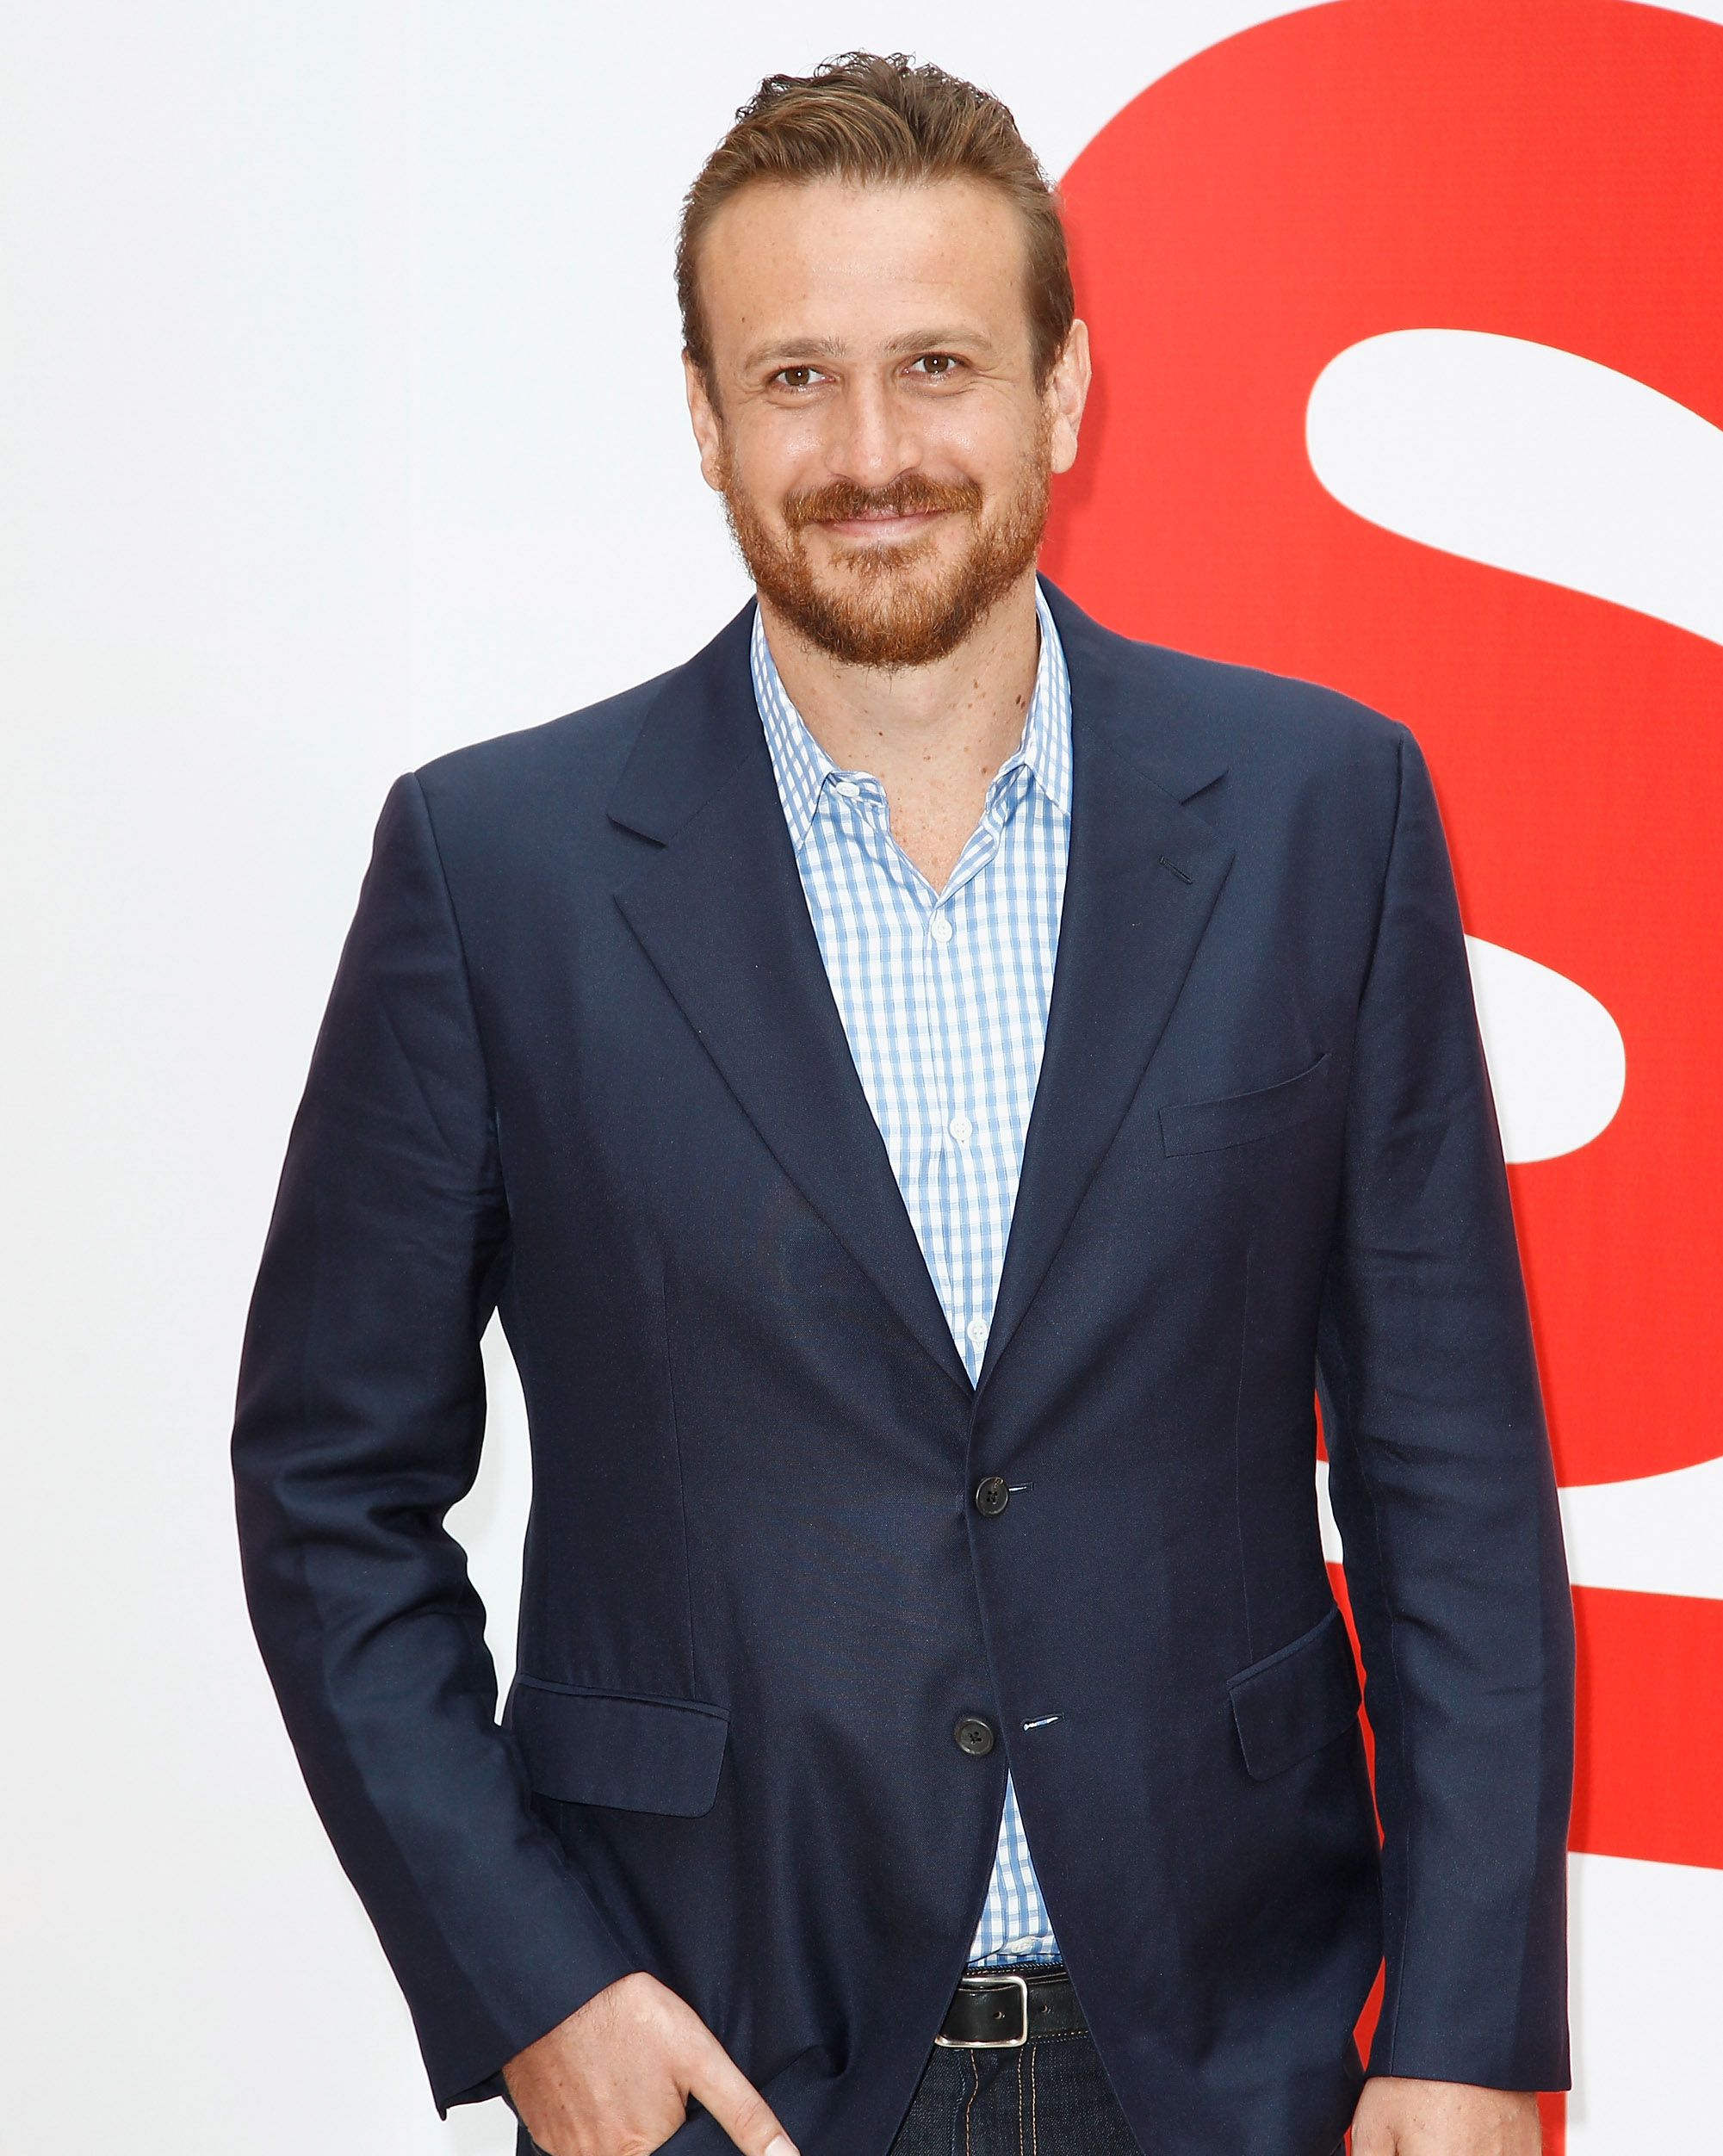 celebrity-wedding-officiants-jason-segel-1015.jpg